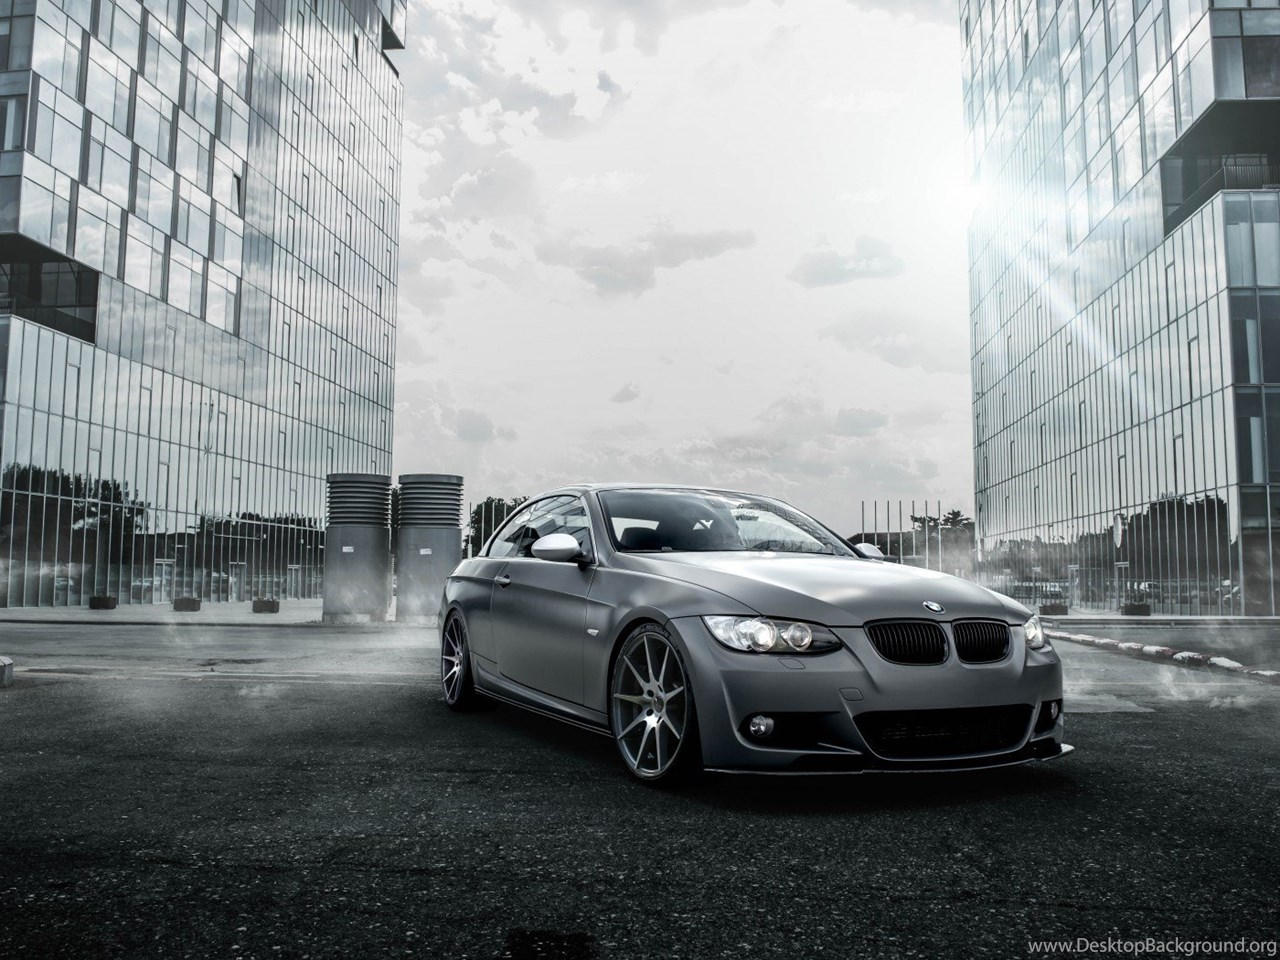 Car Bmw E92 Coupe Wheels Tuning Hd Wallpapers Freewallsup Desktop Background